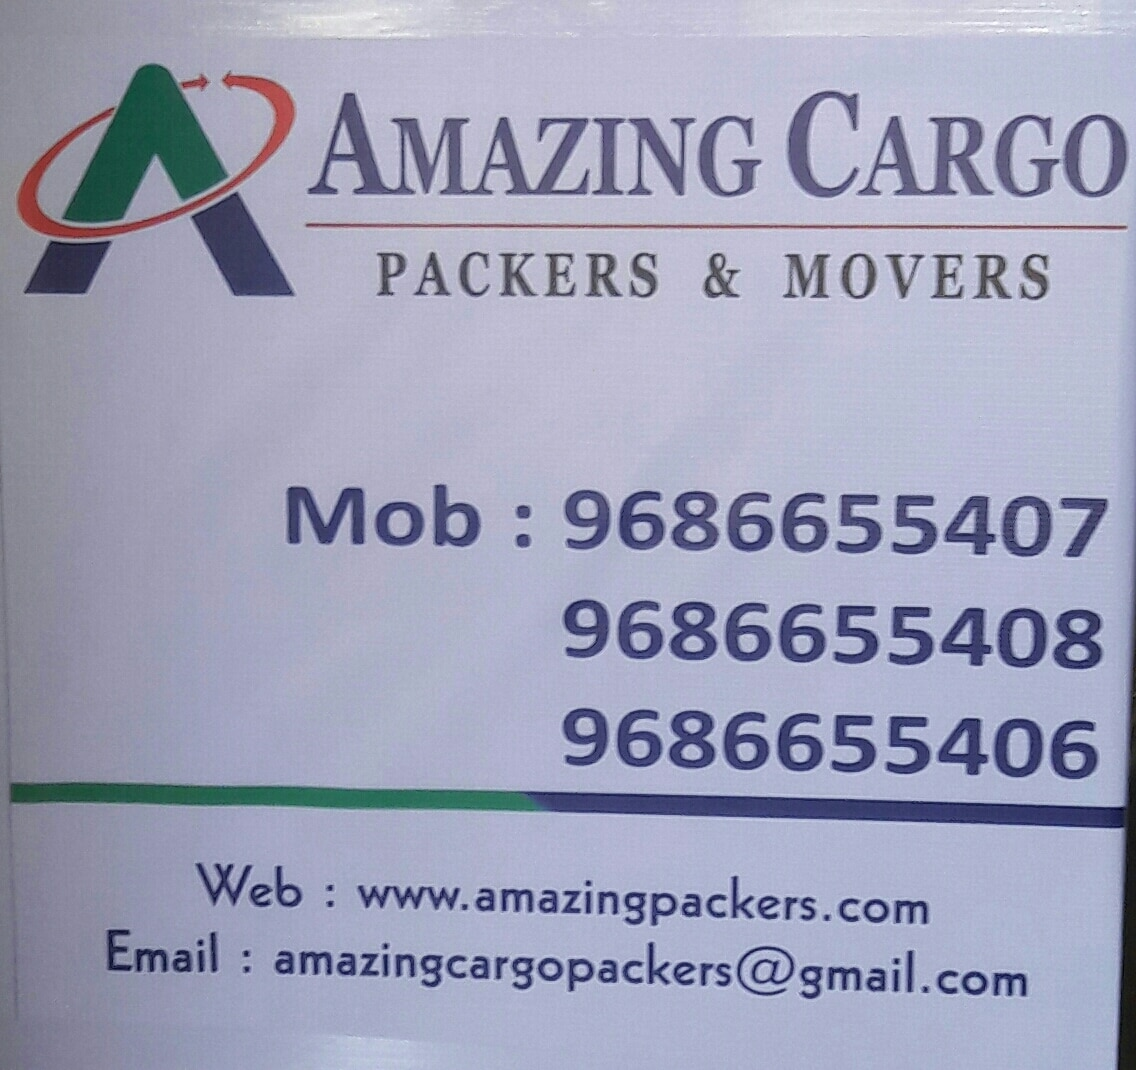 Amazing Cargo Packers and Movers